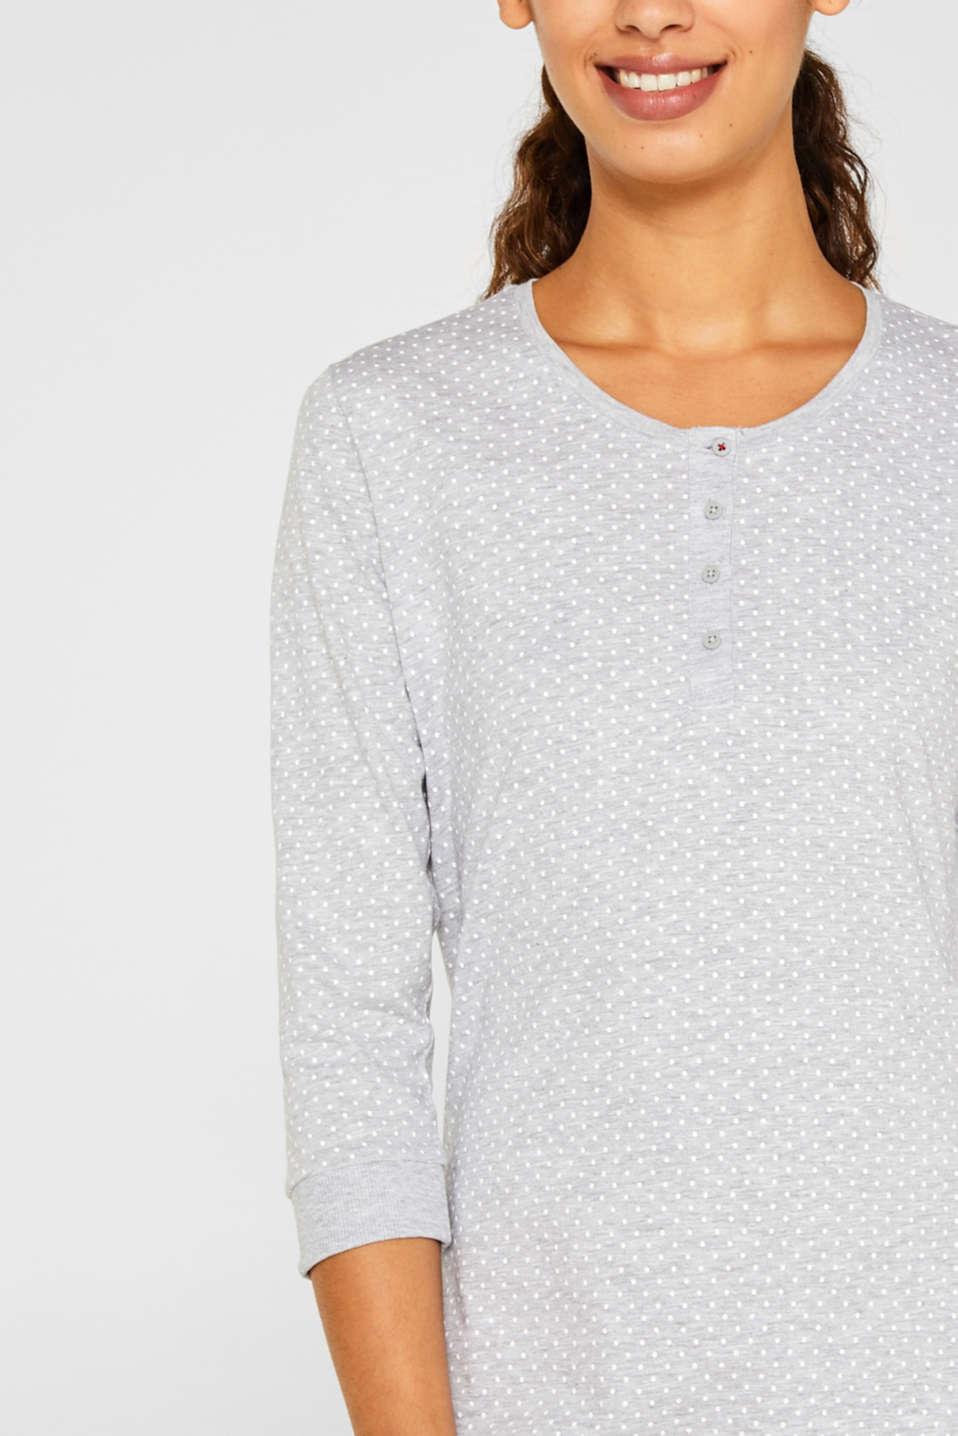 MODERN COTTON mix + match nightshirt, LIGHT GREY, detail image number 3